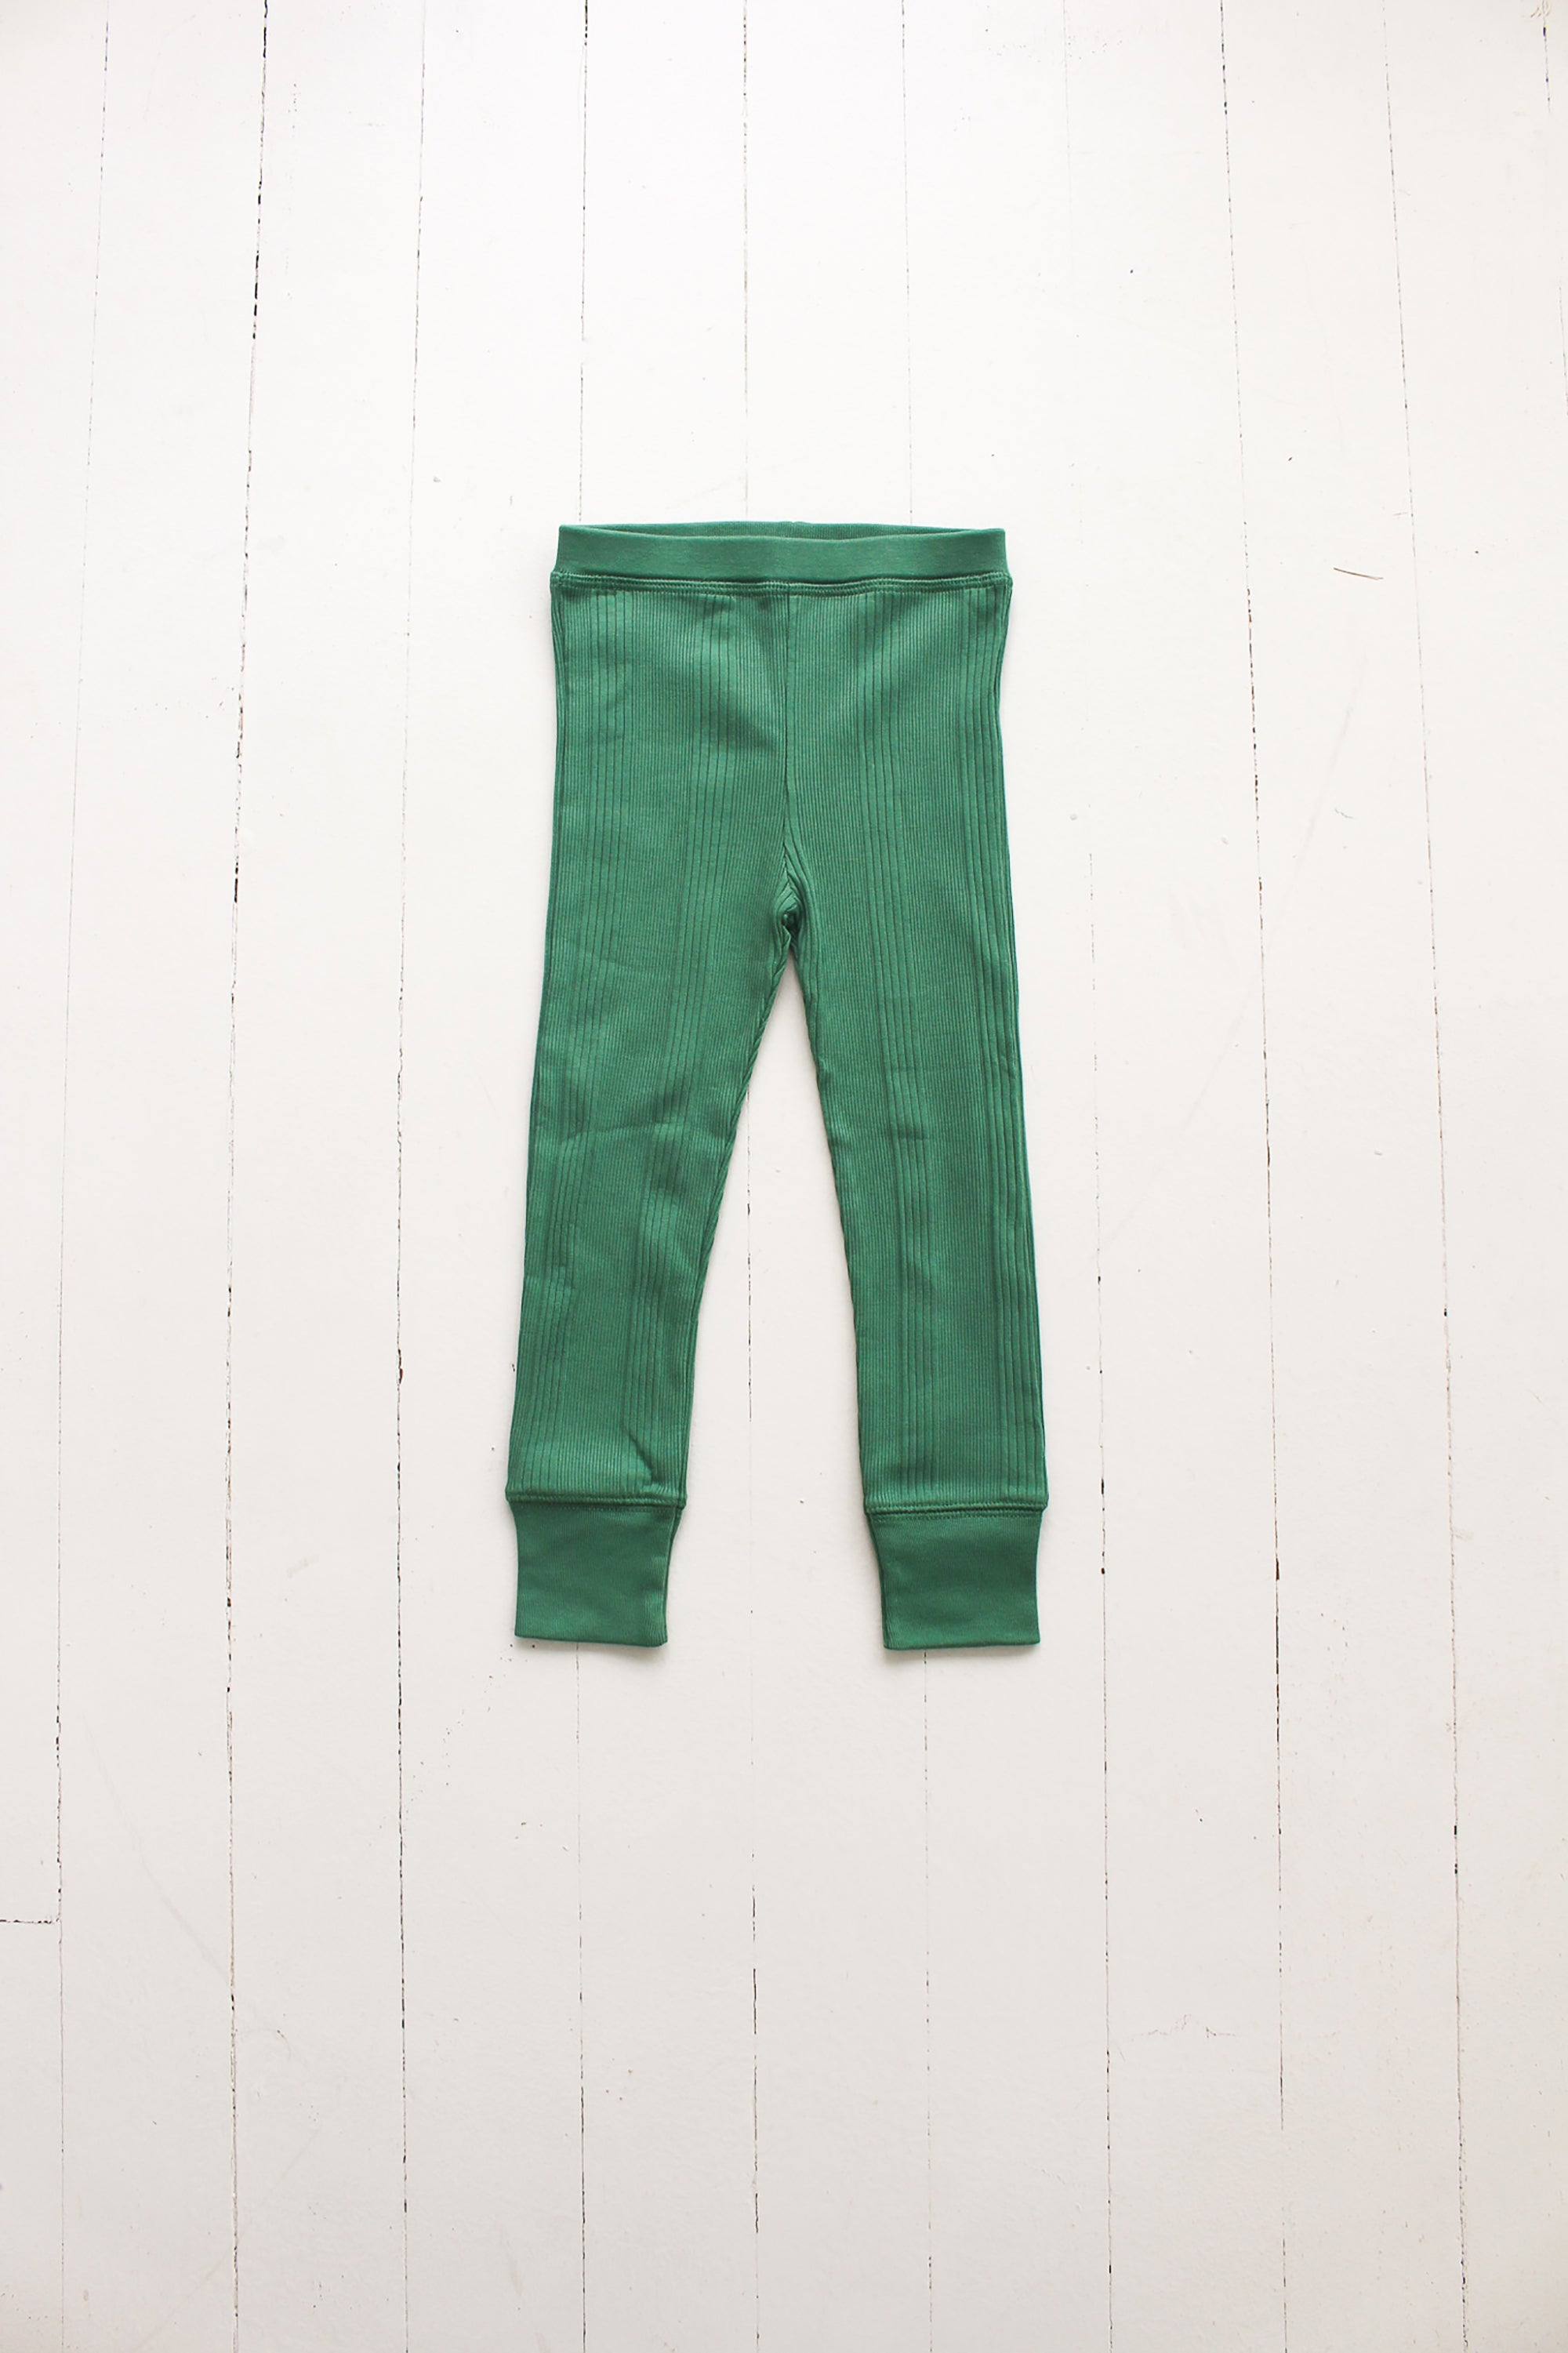 Fin and Vince - Drop Needle Pant (Schoolhouse Green)